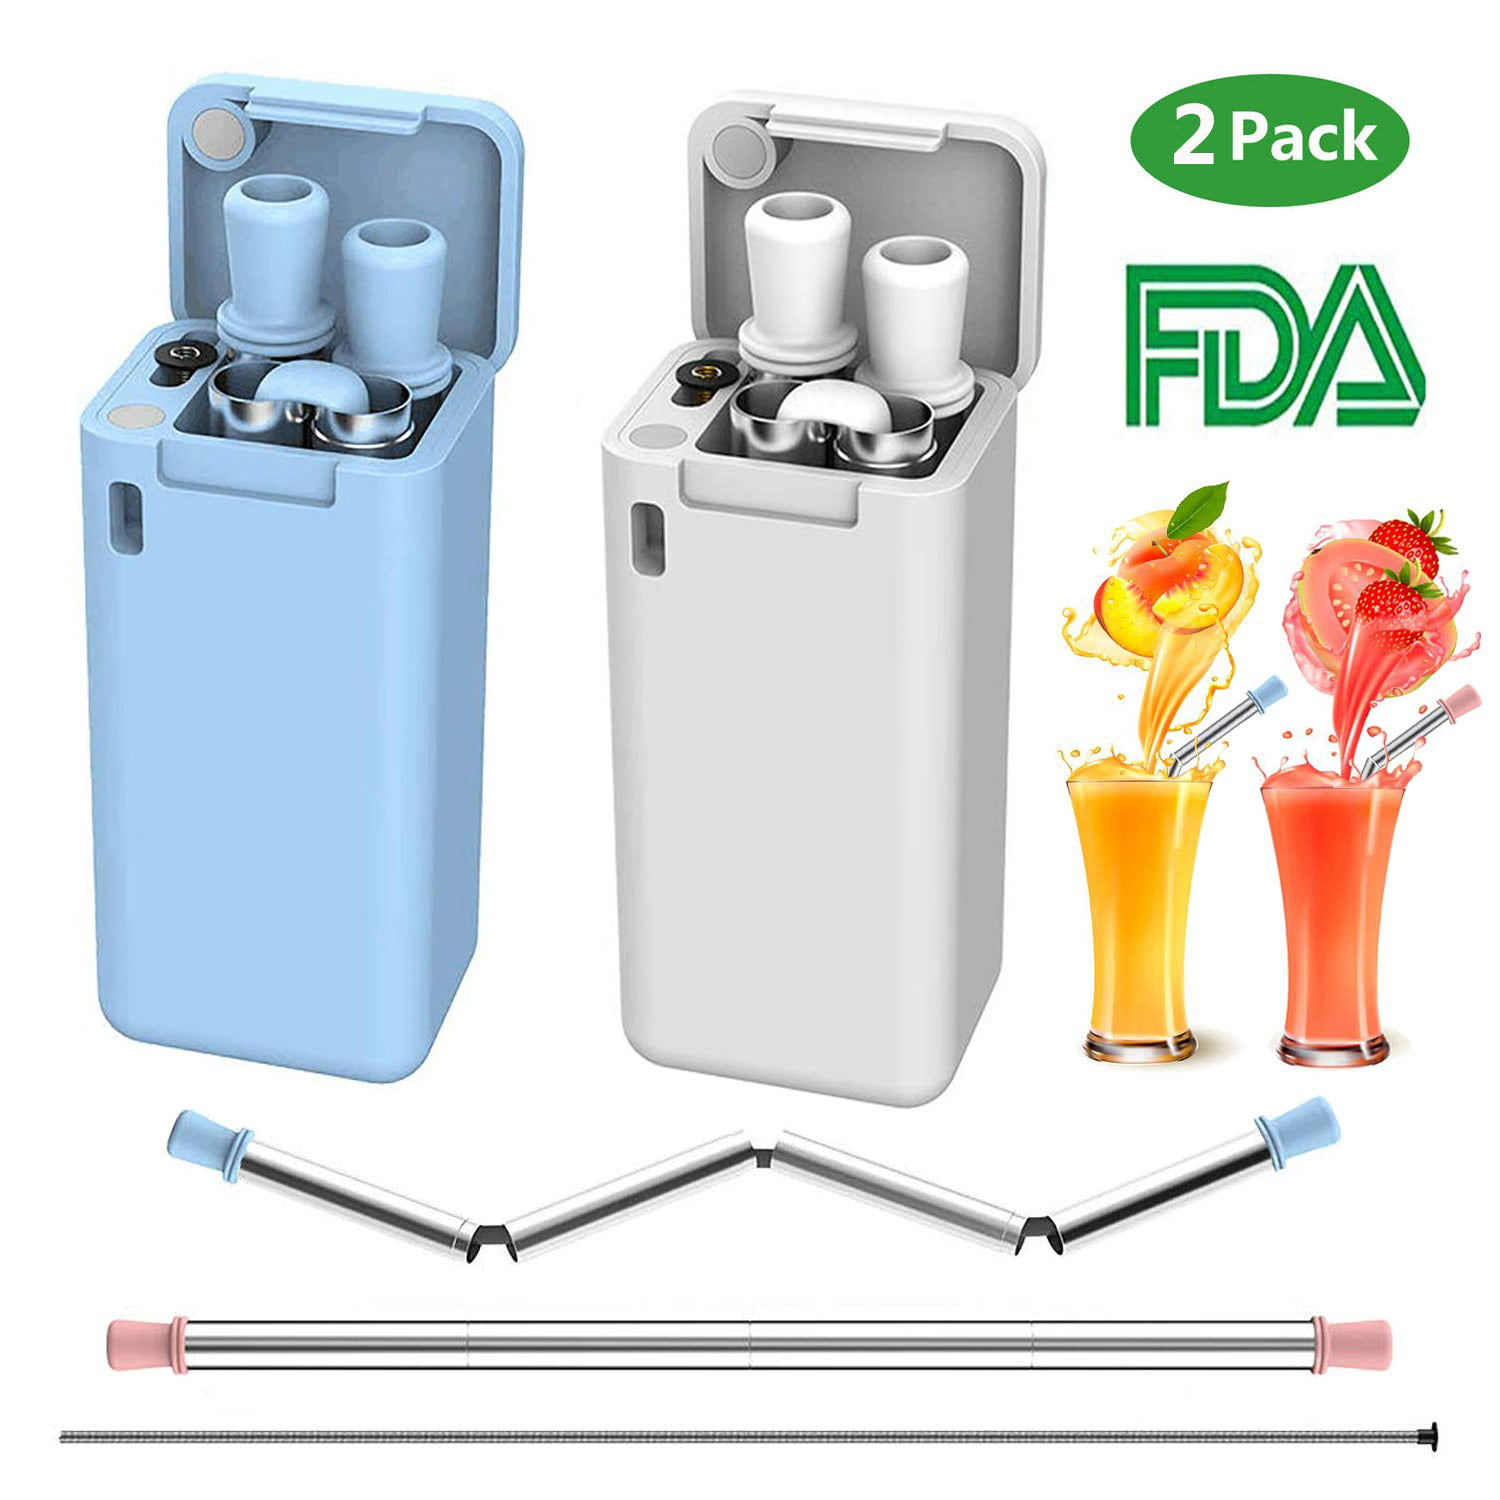 etc. Portable Set with Hard Case Holder and Cleaning Brush Travel for Party White//White 2 Pack Collapsible Reusable Straw Outdoor Composed of Stainless Steel and Food-Grade Silicone